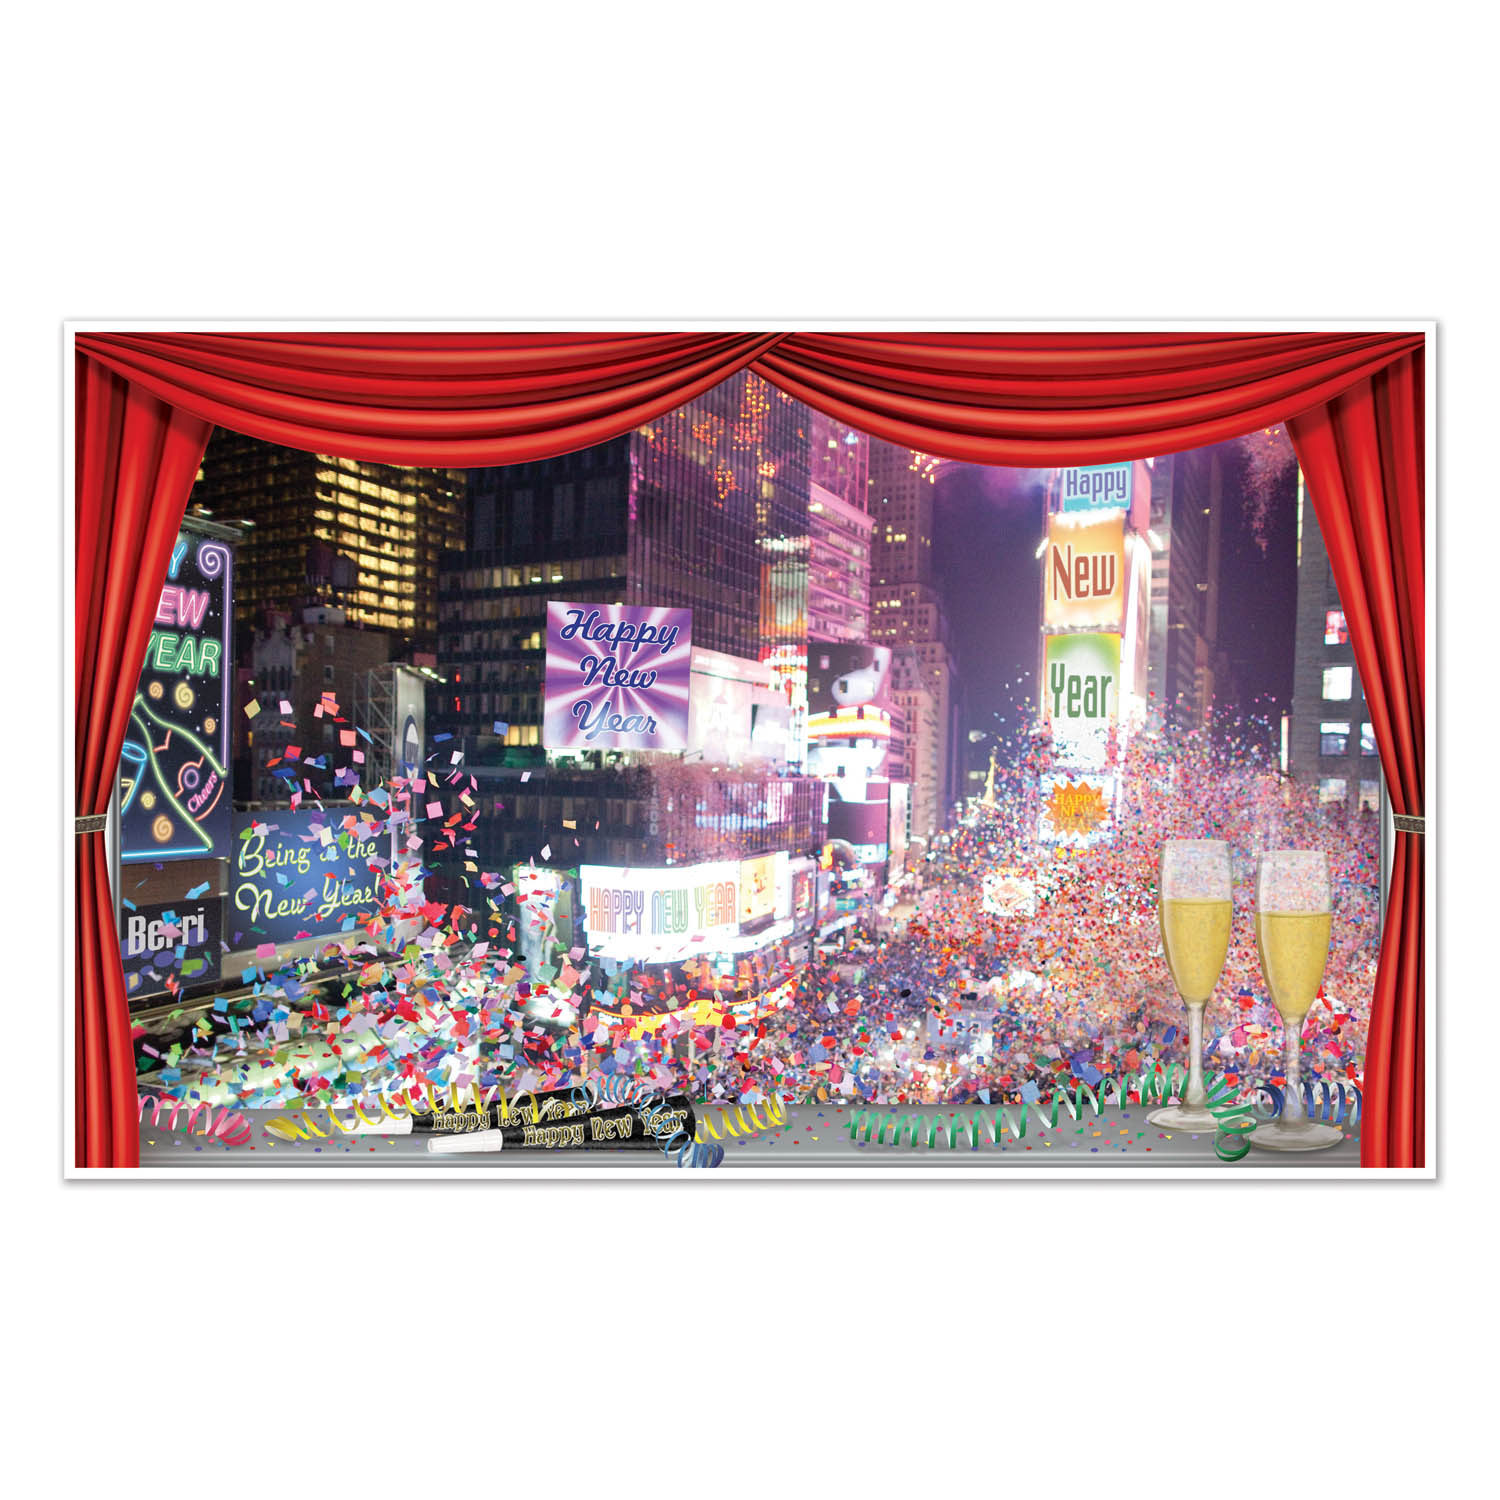 New York scene printed on thin plastic material to hang on your walls.